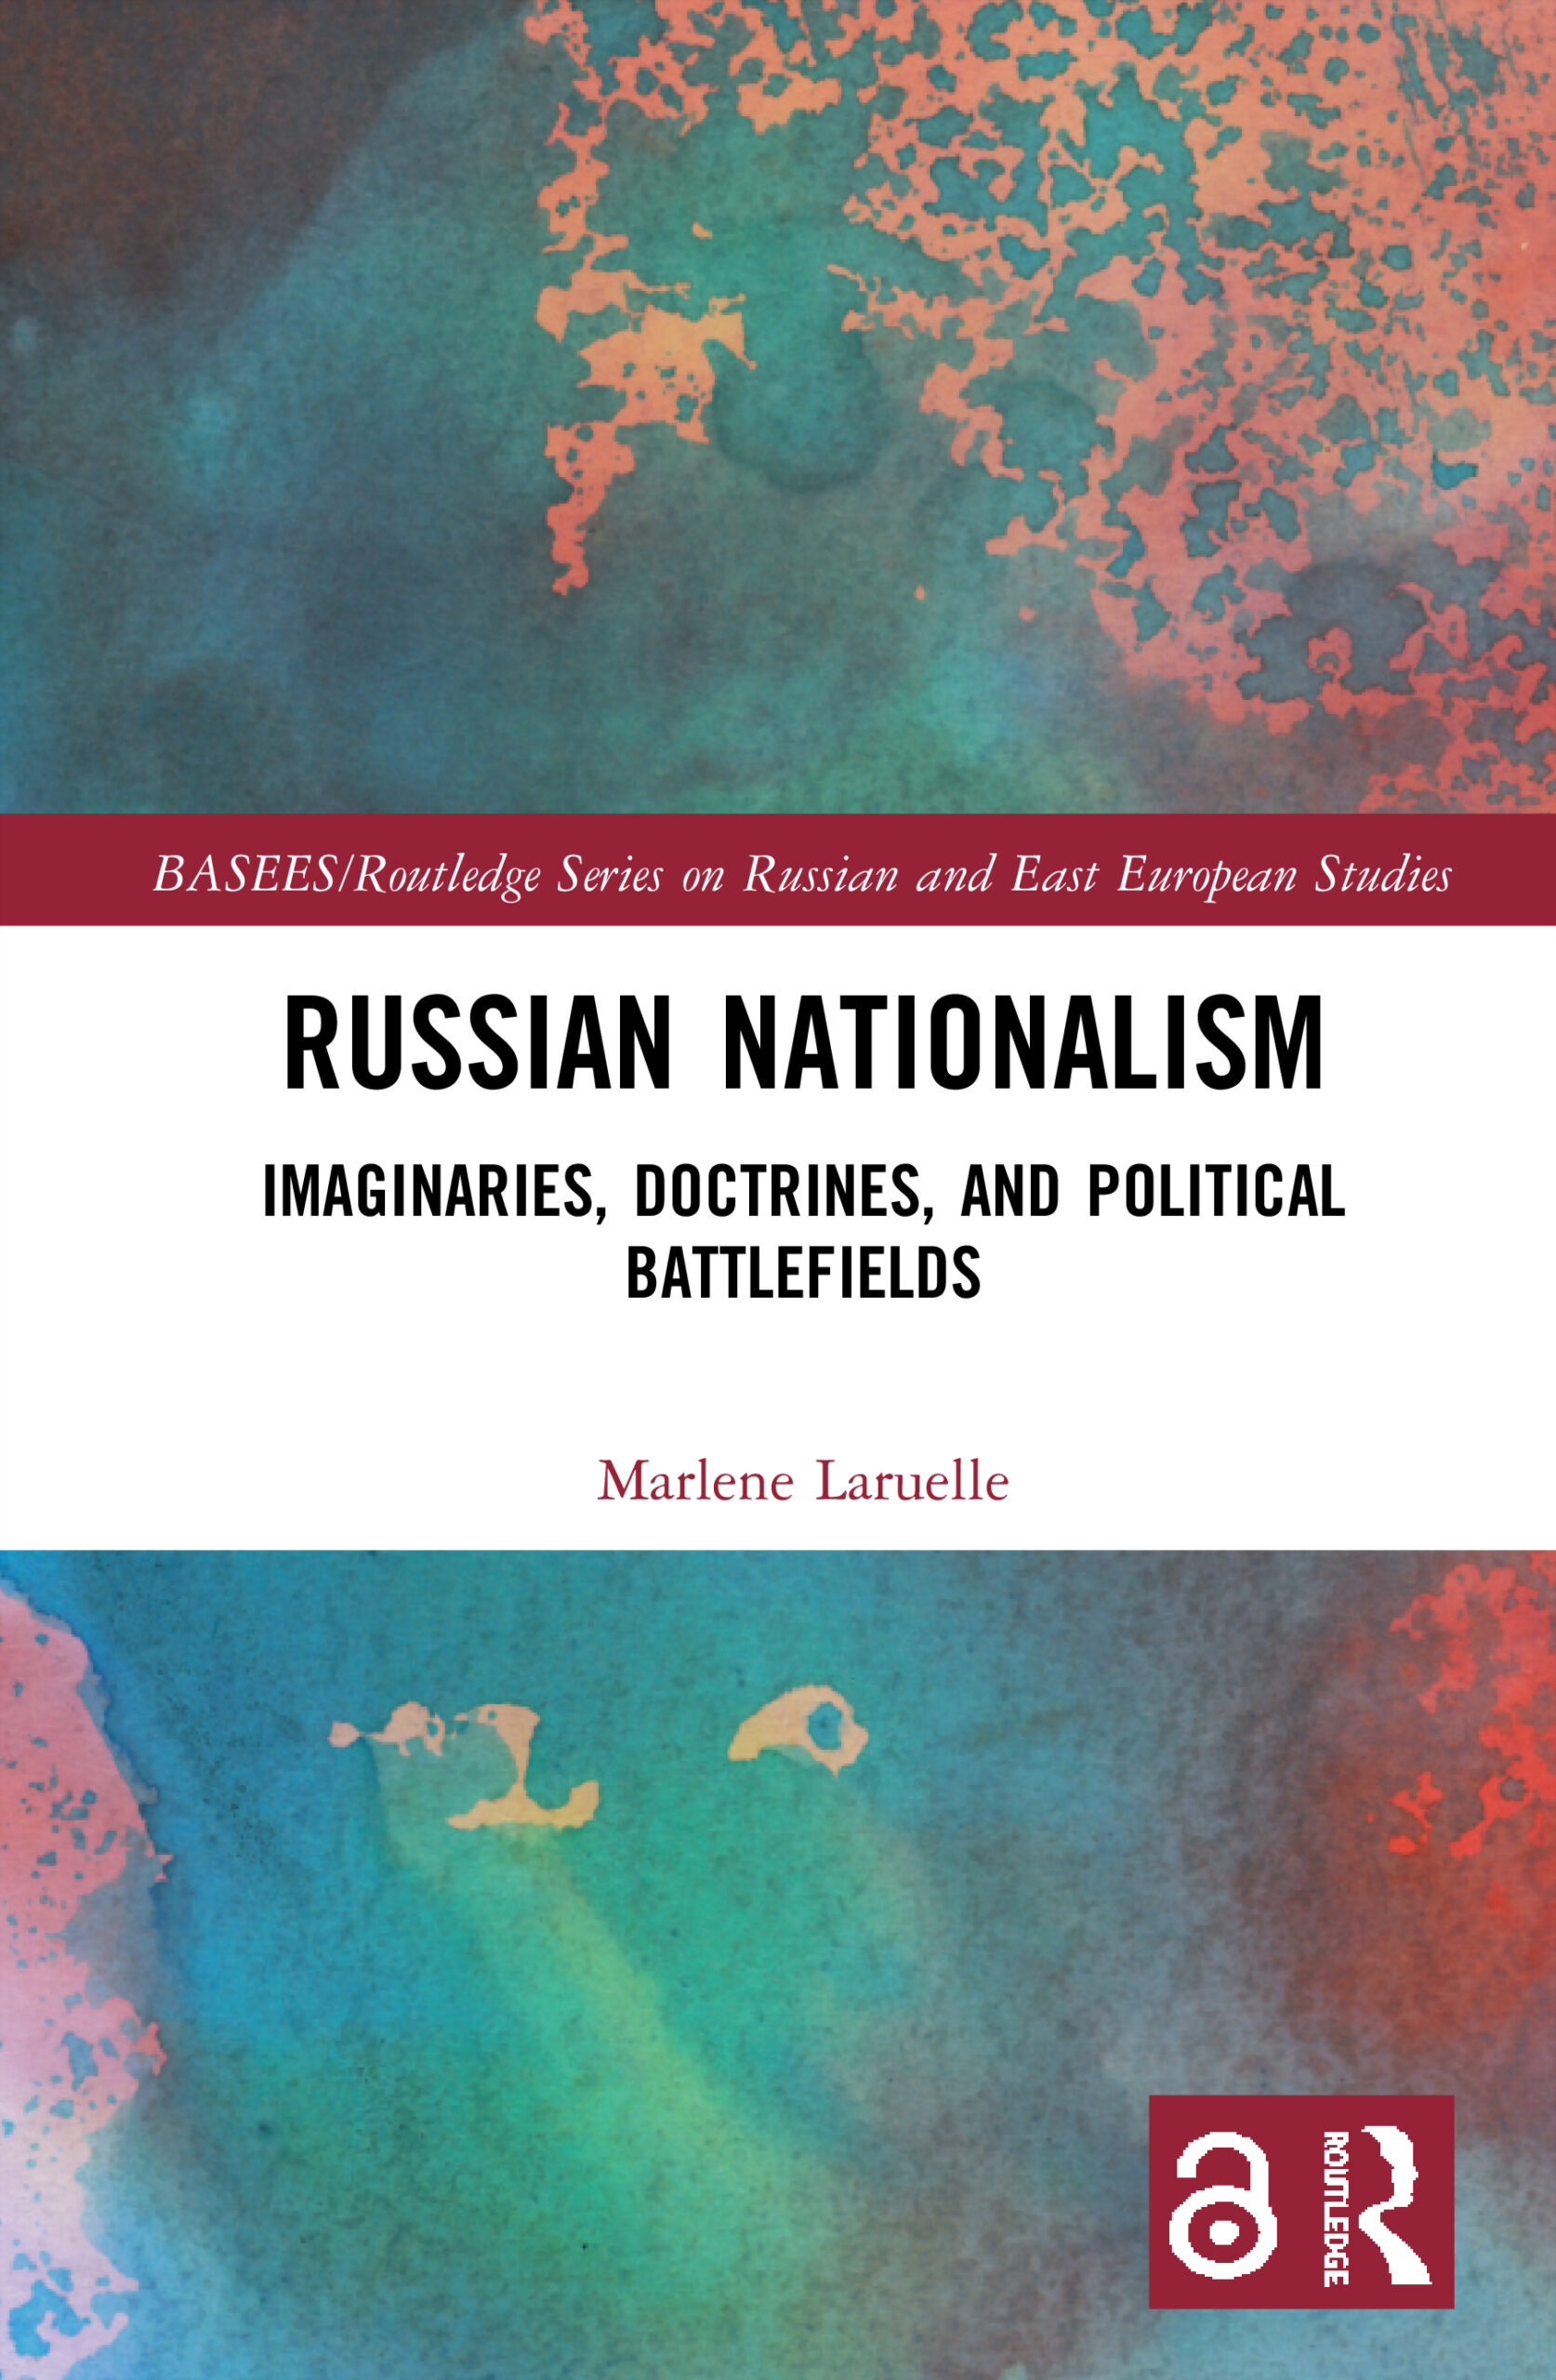 Russian Nationalism: Imaginaries, Doctrines and Political Battlefields